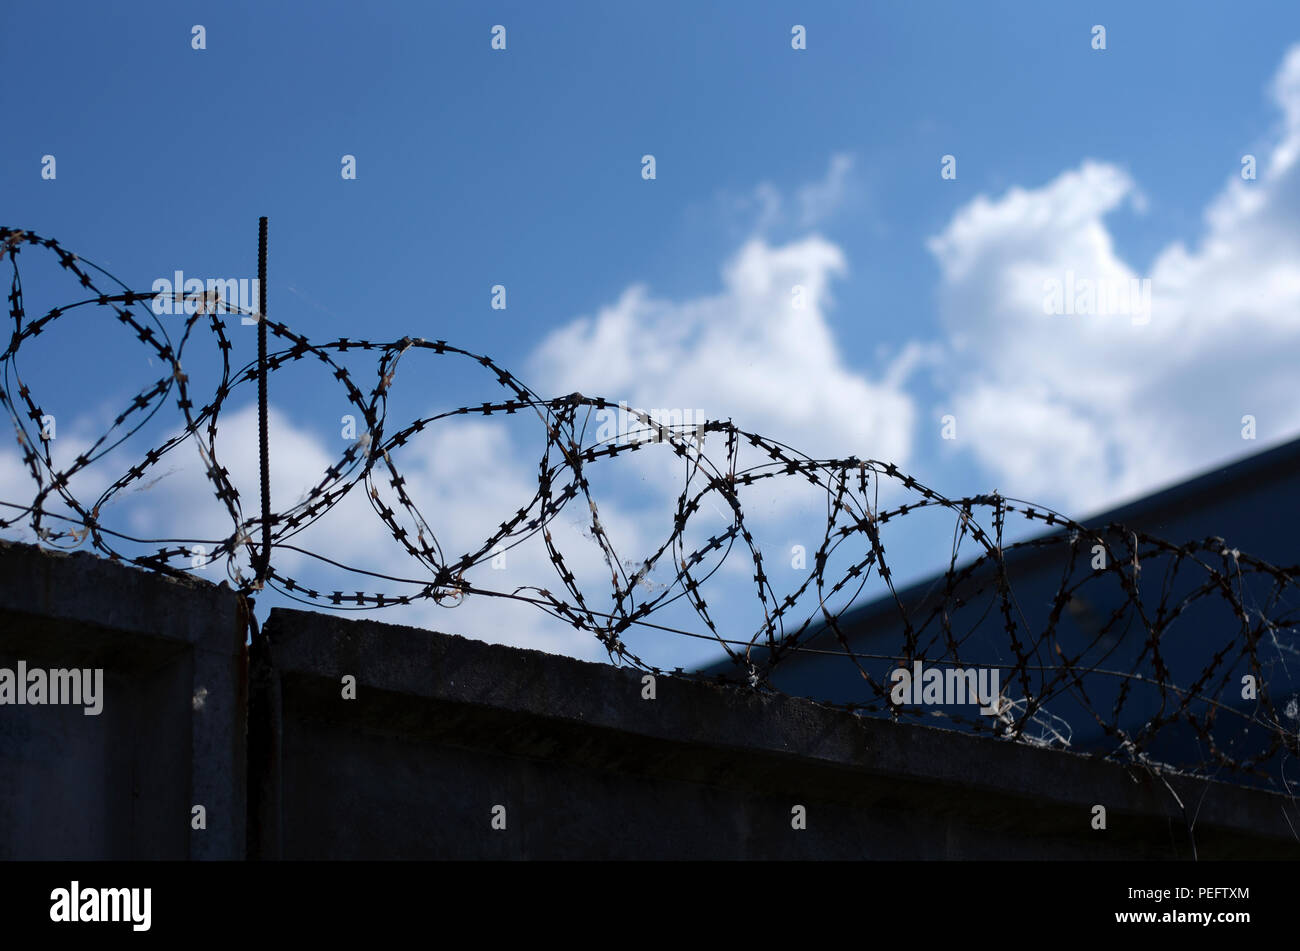 Metal barbed wire over concrete fence against blue sky with clouds - Stock Image